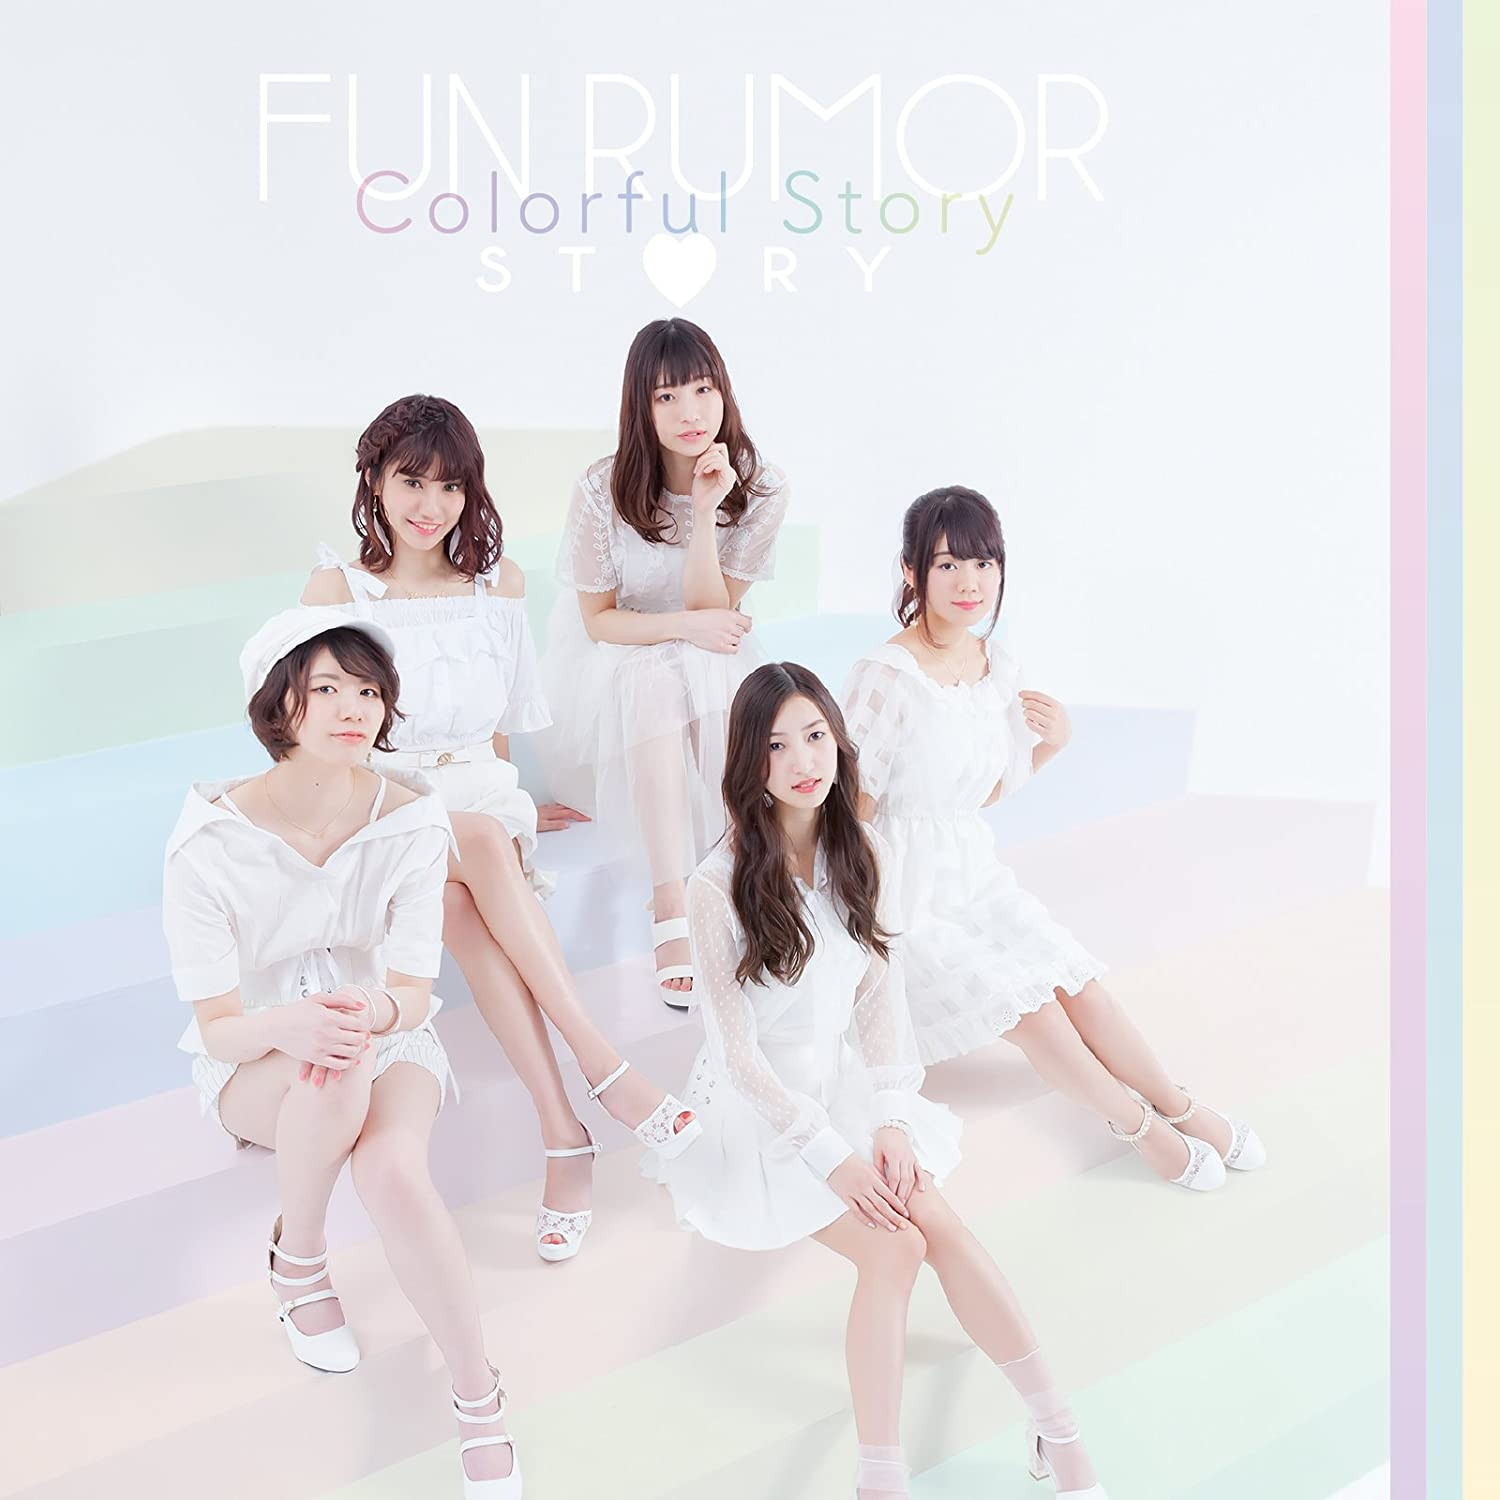 FUN RUMOR STOR | Colorful Story (Album)